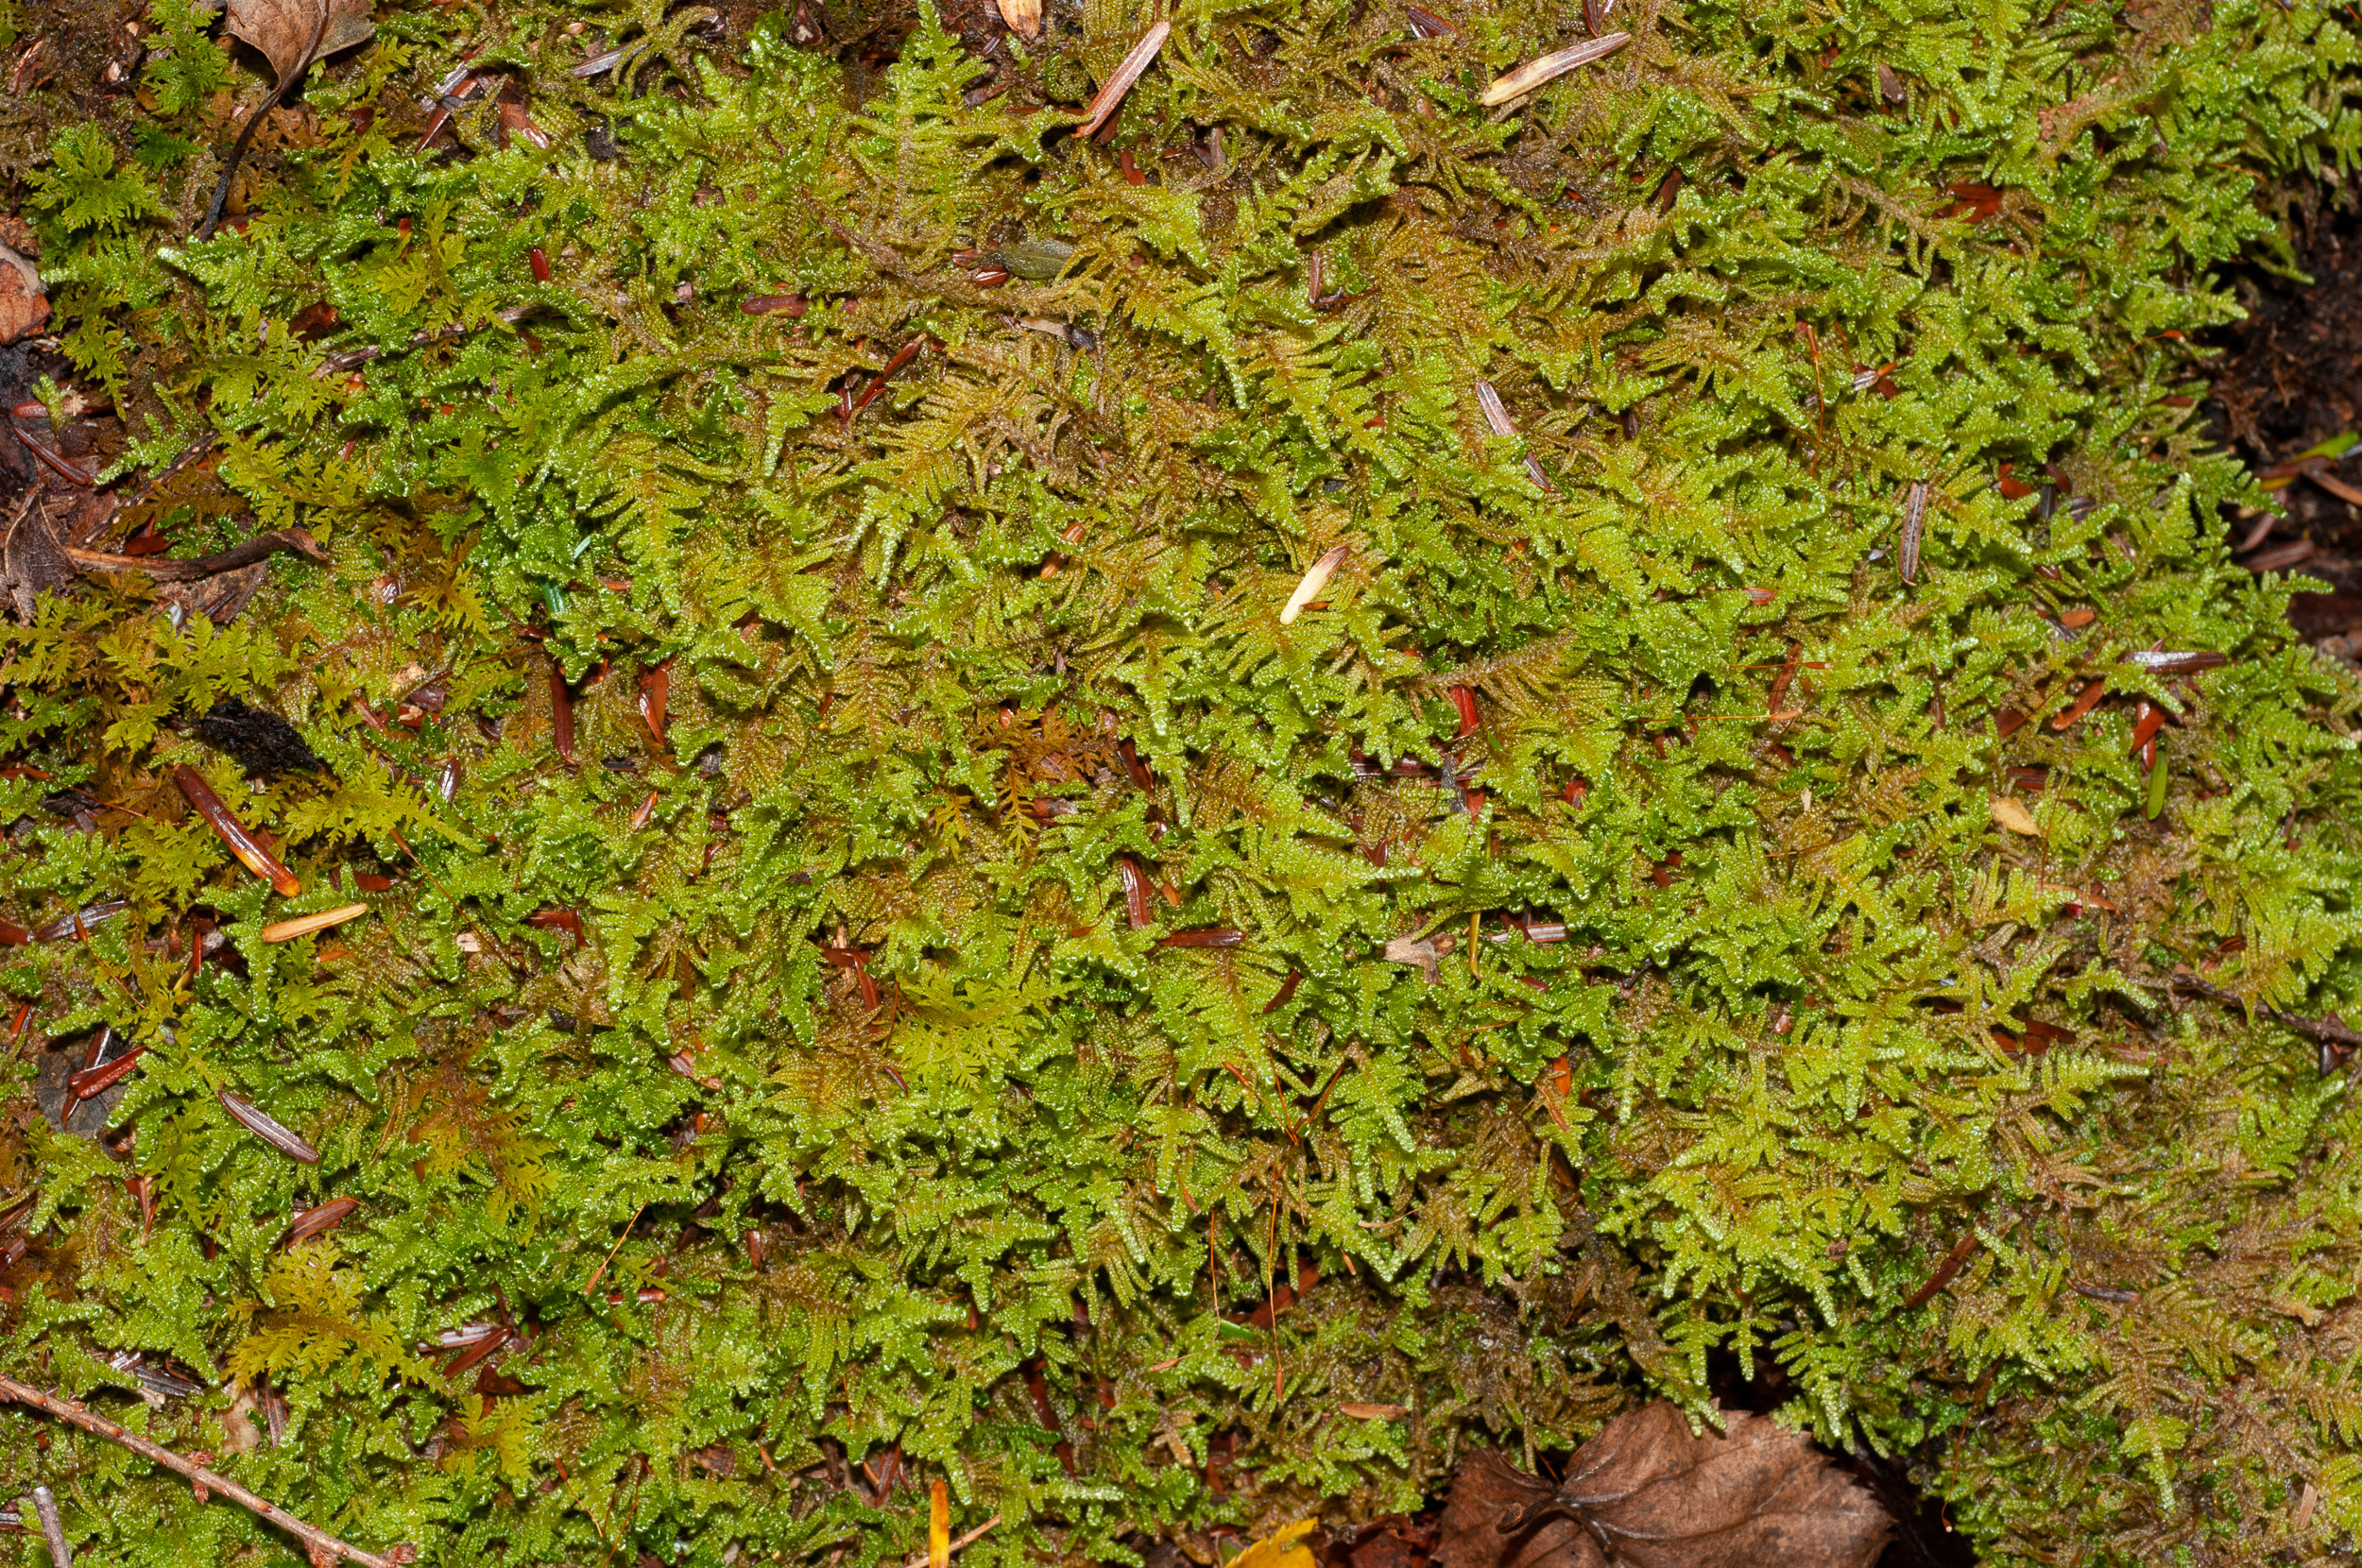 an introduction to the sphagnum peat moss The use of sphagnum peat moss as a component of horticultural growing media has been very important because of the unique properties of the sphagnum cells to hold and release water.